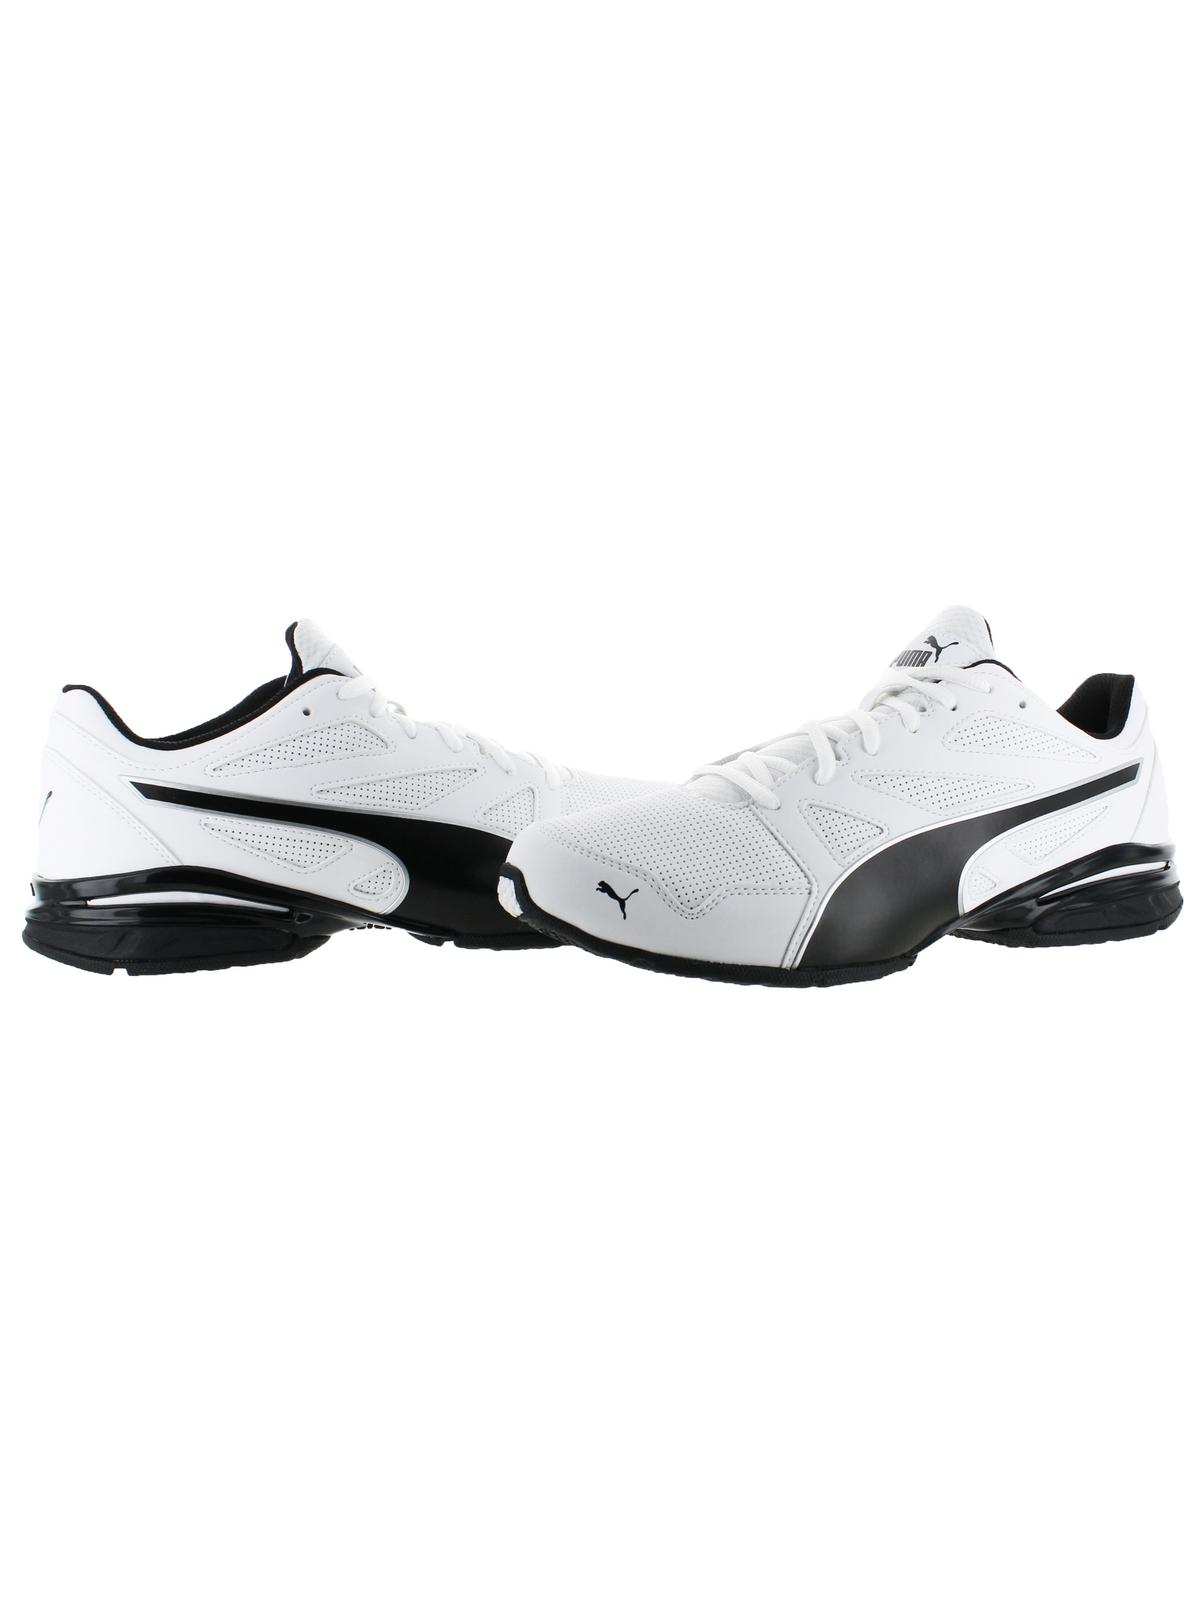 PUMA - Puma Mens Tazon Modern SL FM Lace Up Trainer Running Shoes -  Walmart.com 741b0d5de